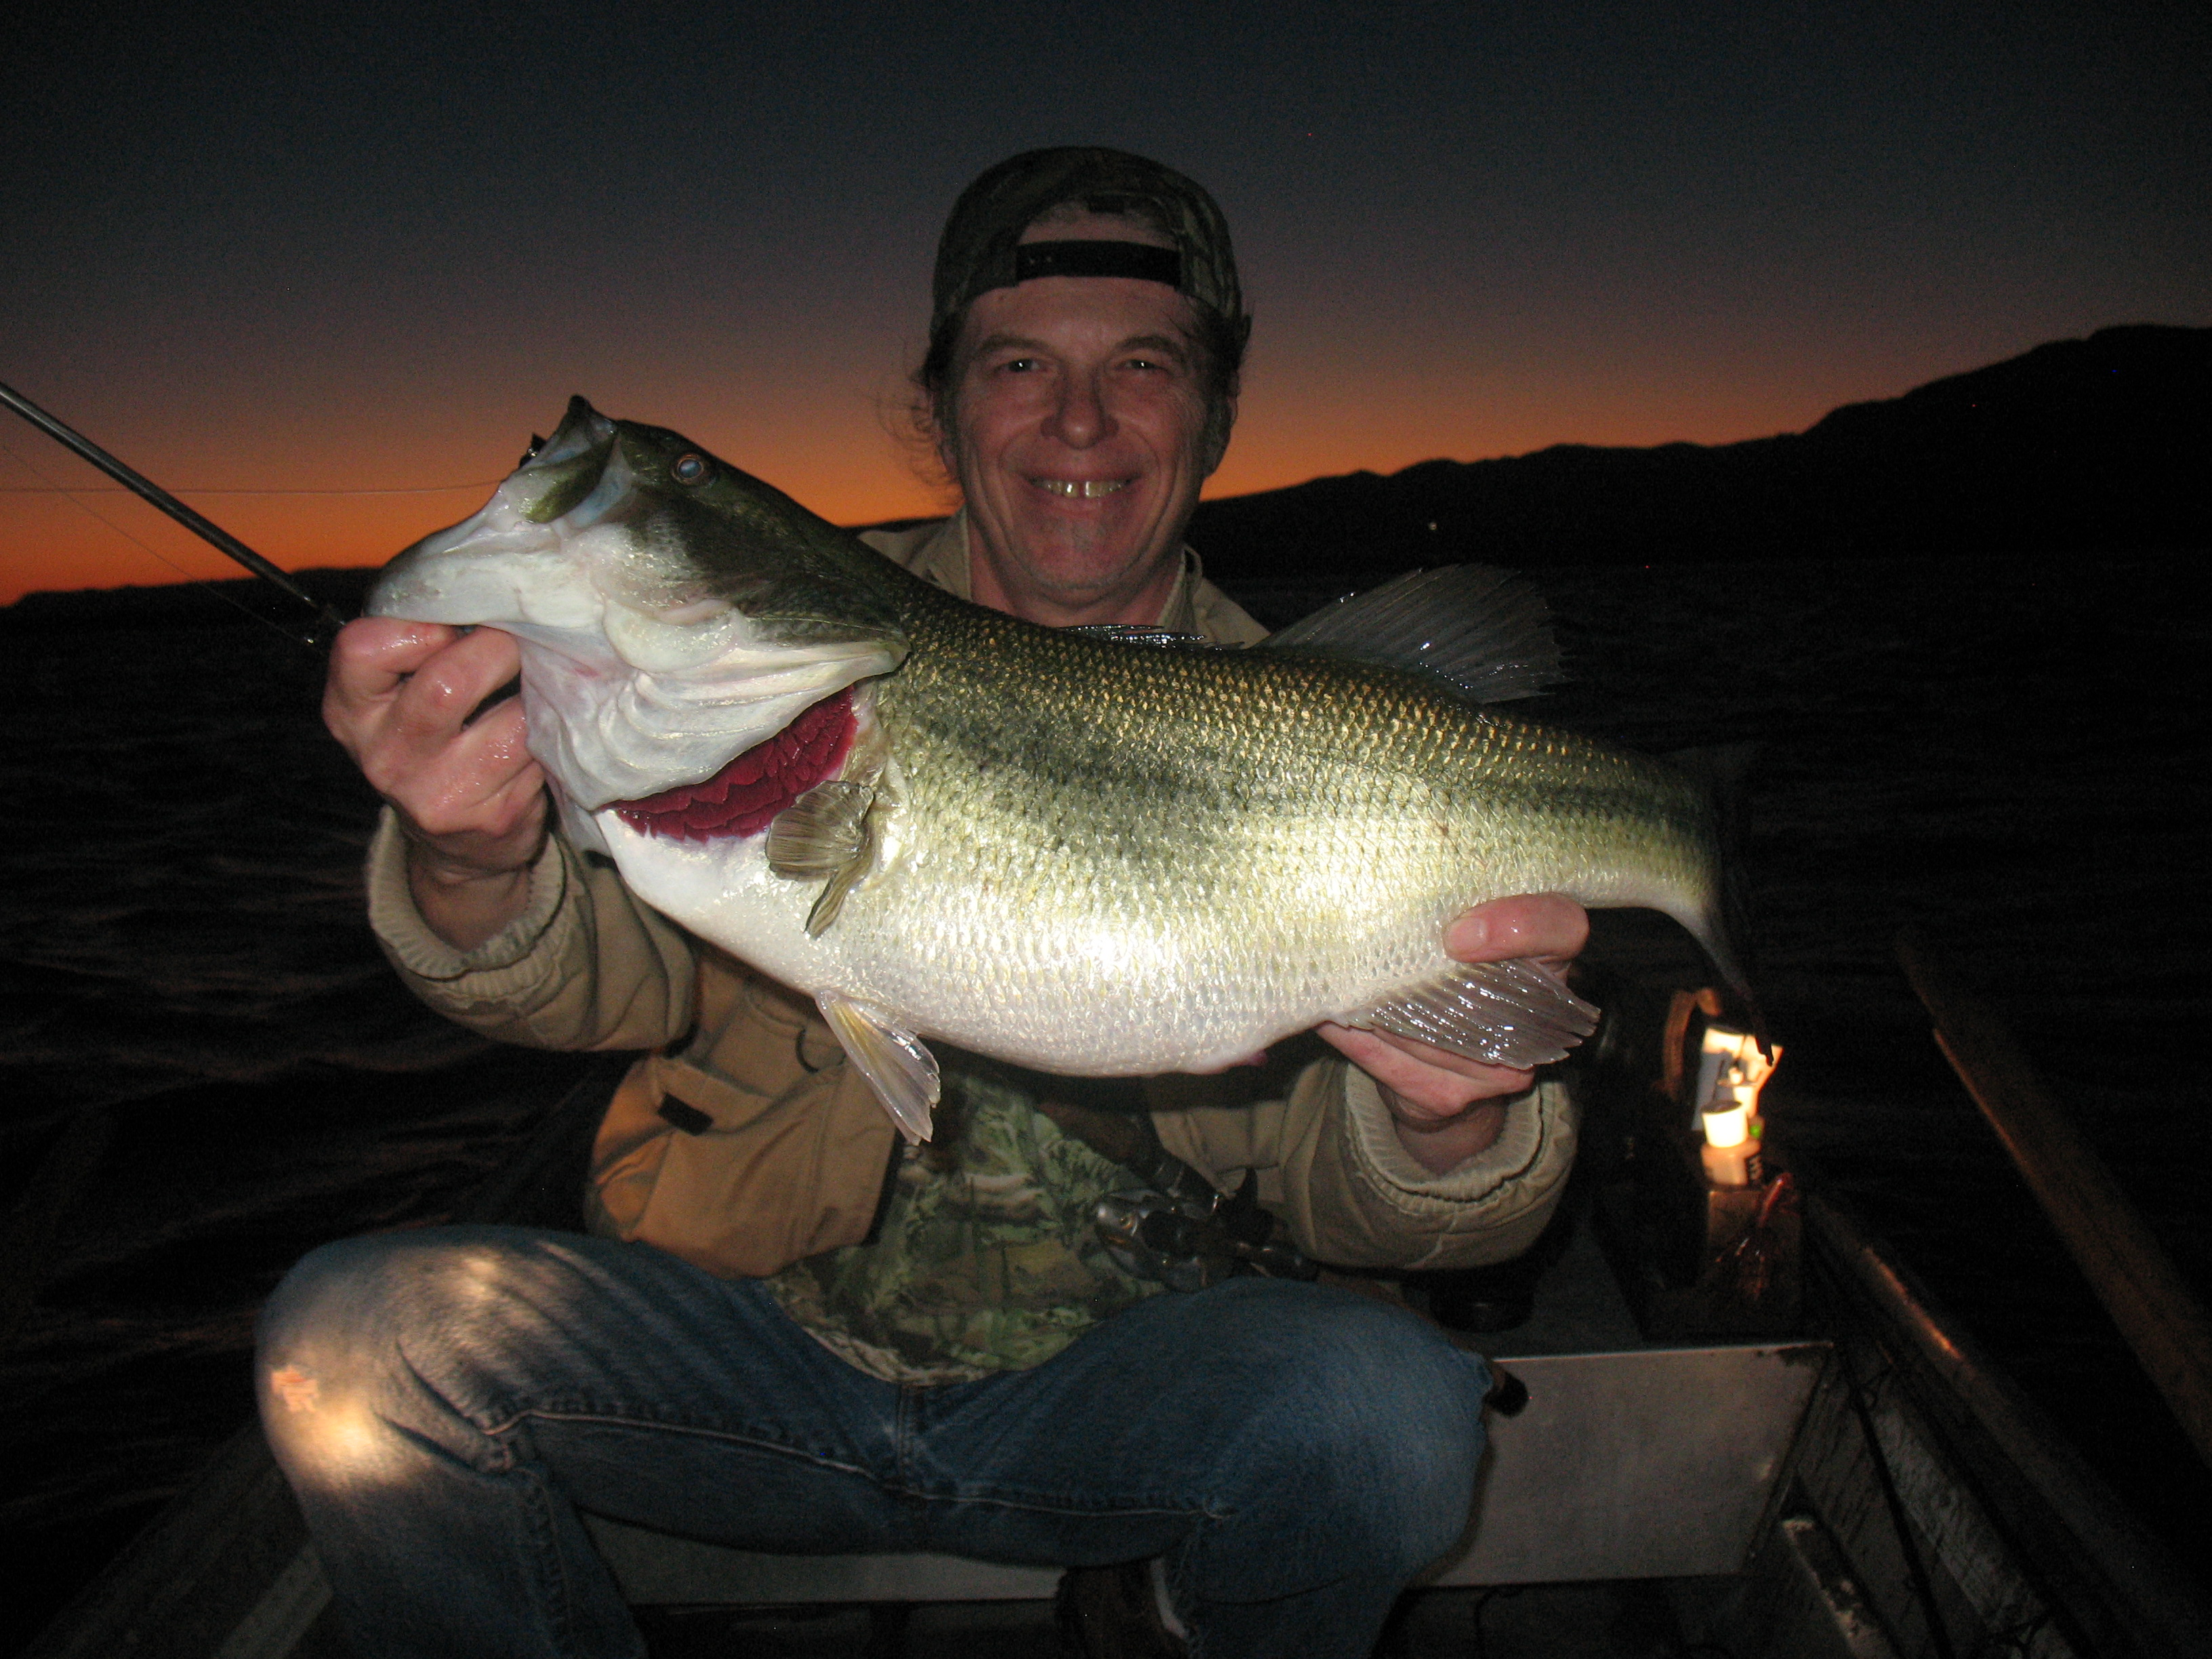 Bass fishing at night the hunt for giant night bass for Night bass fishing